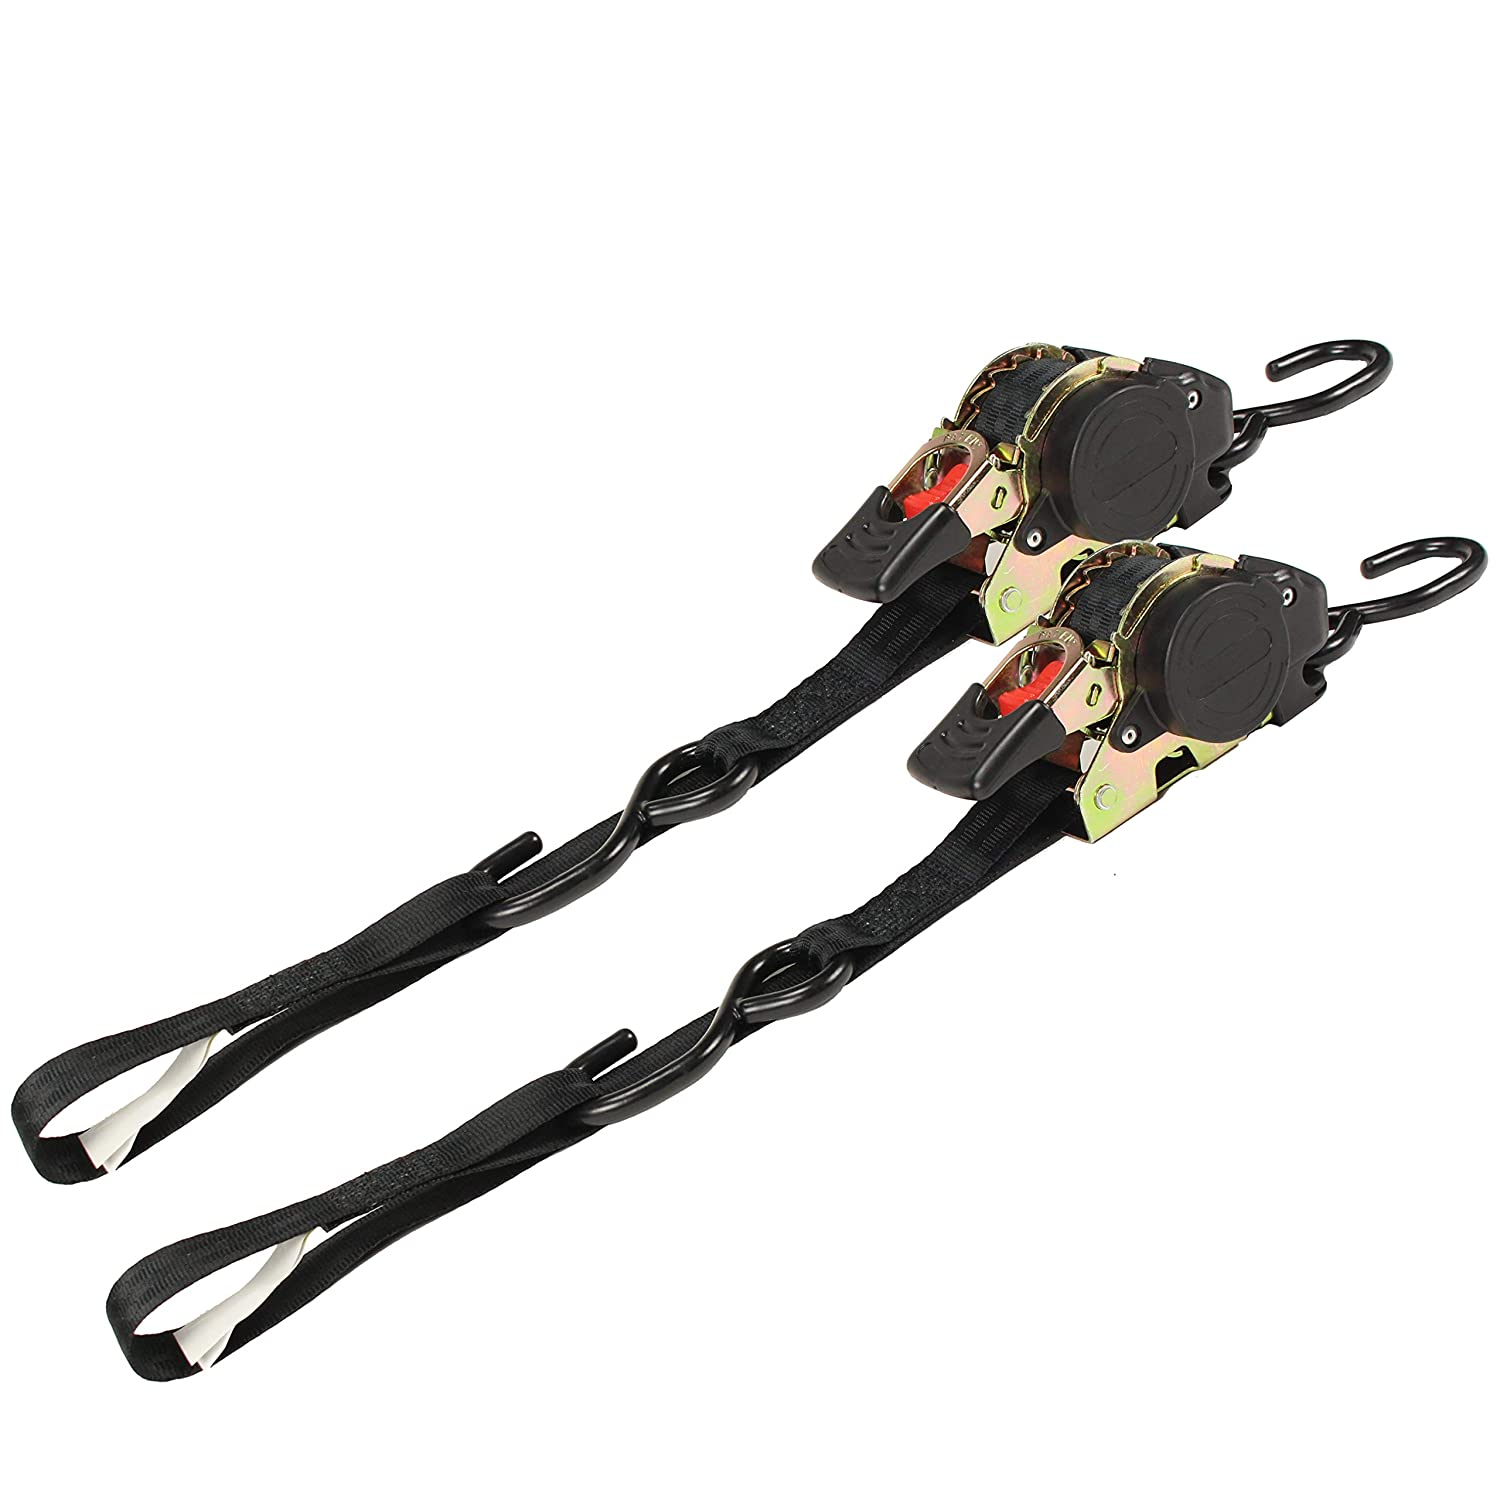 Auto Retract NO-RATCHETING Ratchet Straps w/Soft Loop | 1' x 10' SELF-CONTAINED Compact Cargo Strap Tiedowns for Tight & Secure Hauling and Anchoring in Trailers, Garages, Trucks, Pickups | 2 Pack DC Cargo Mall